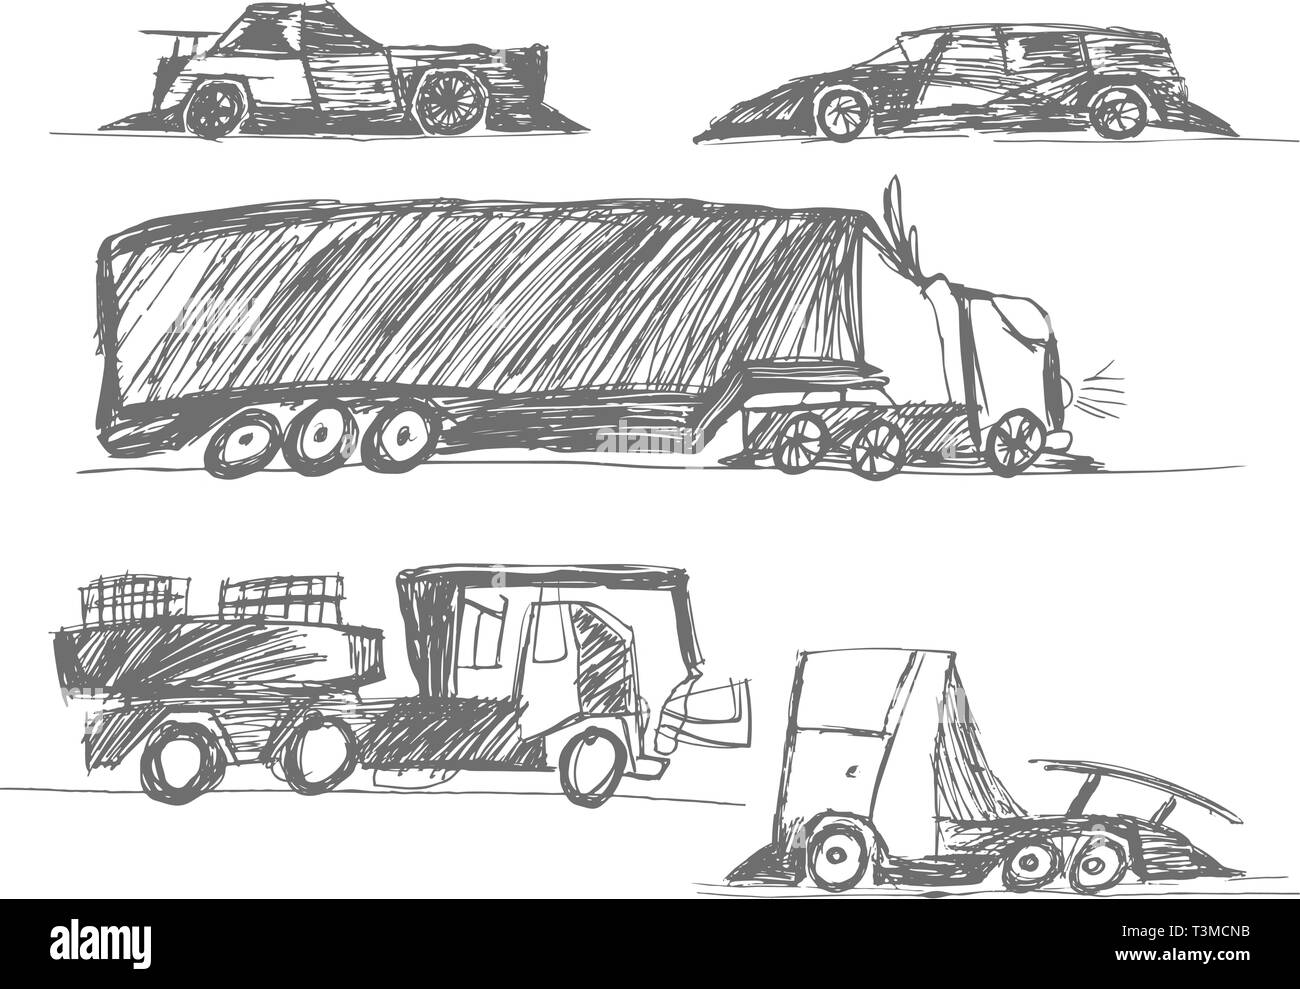 Childrens drawings cars stock image